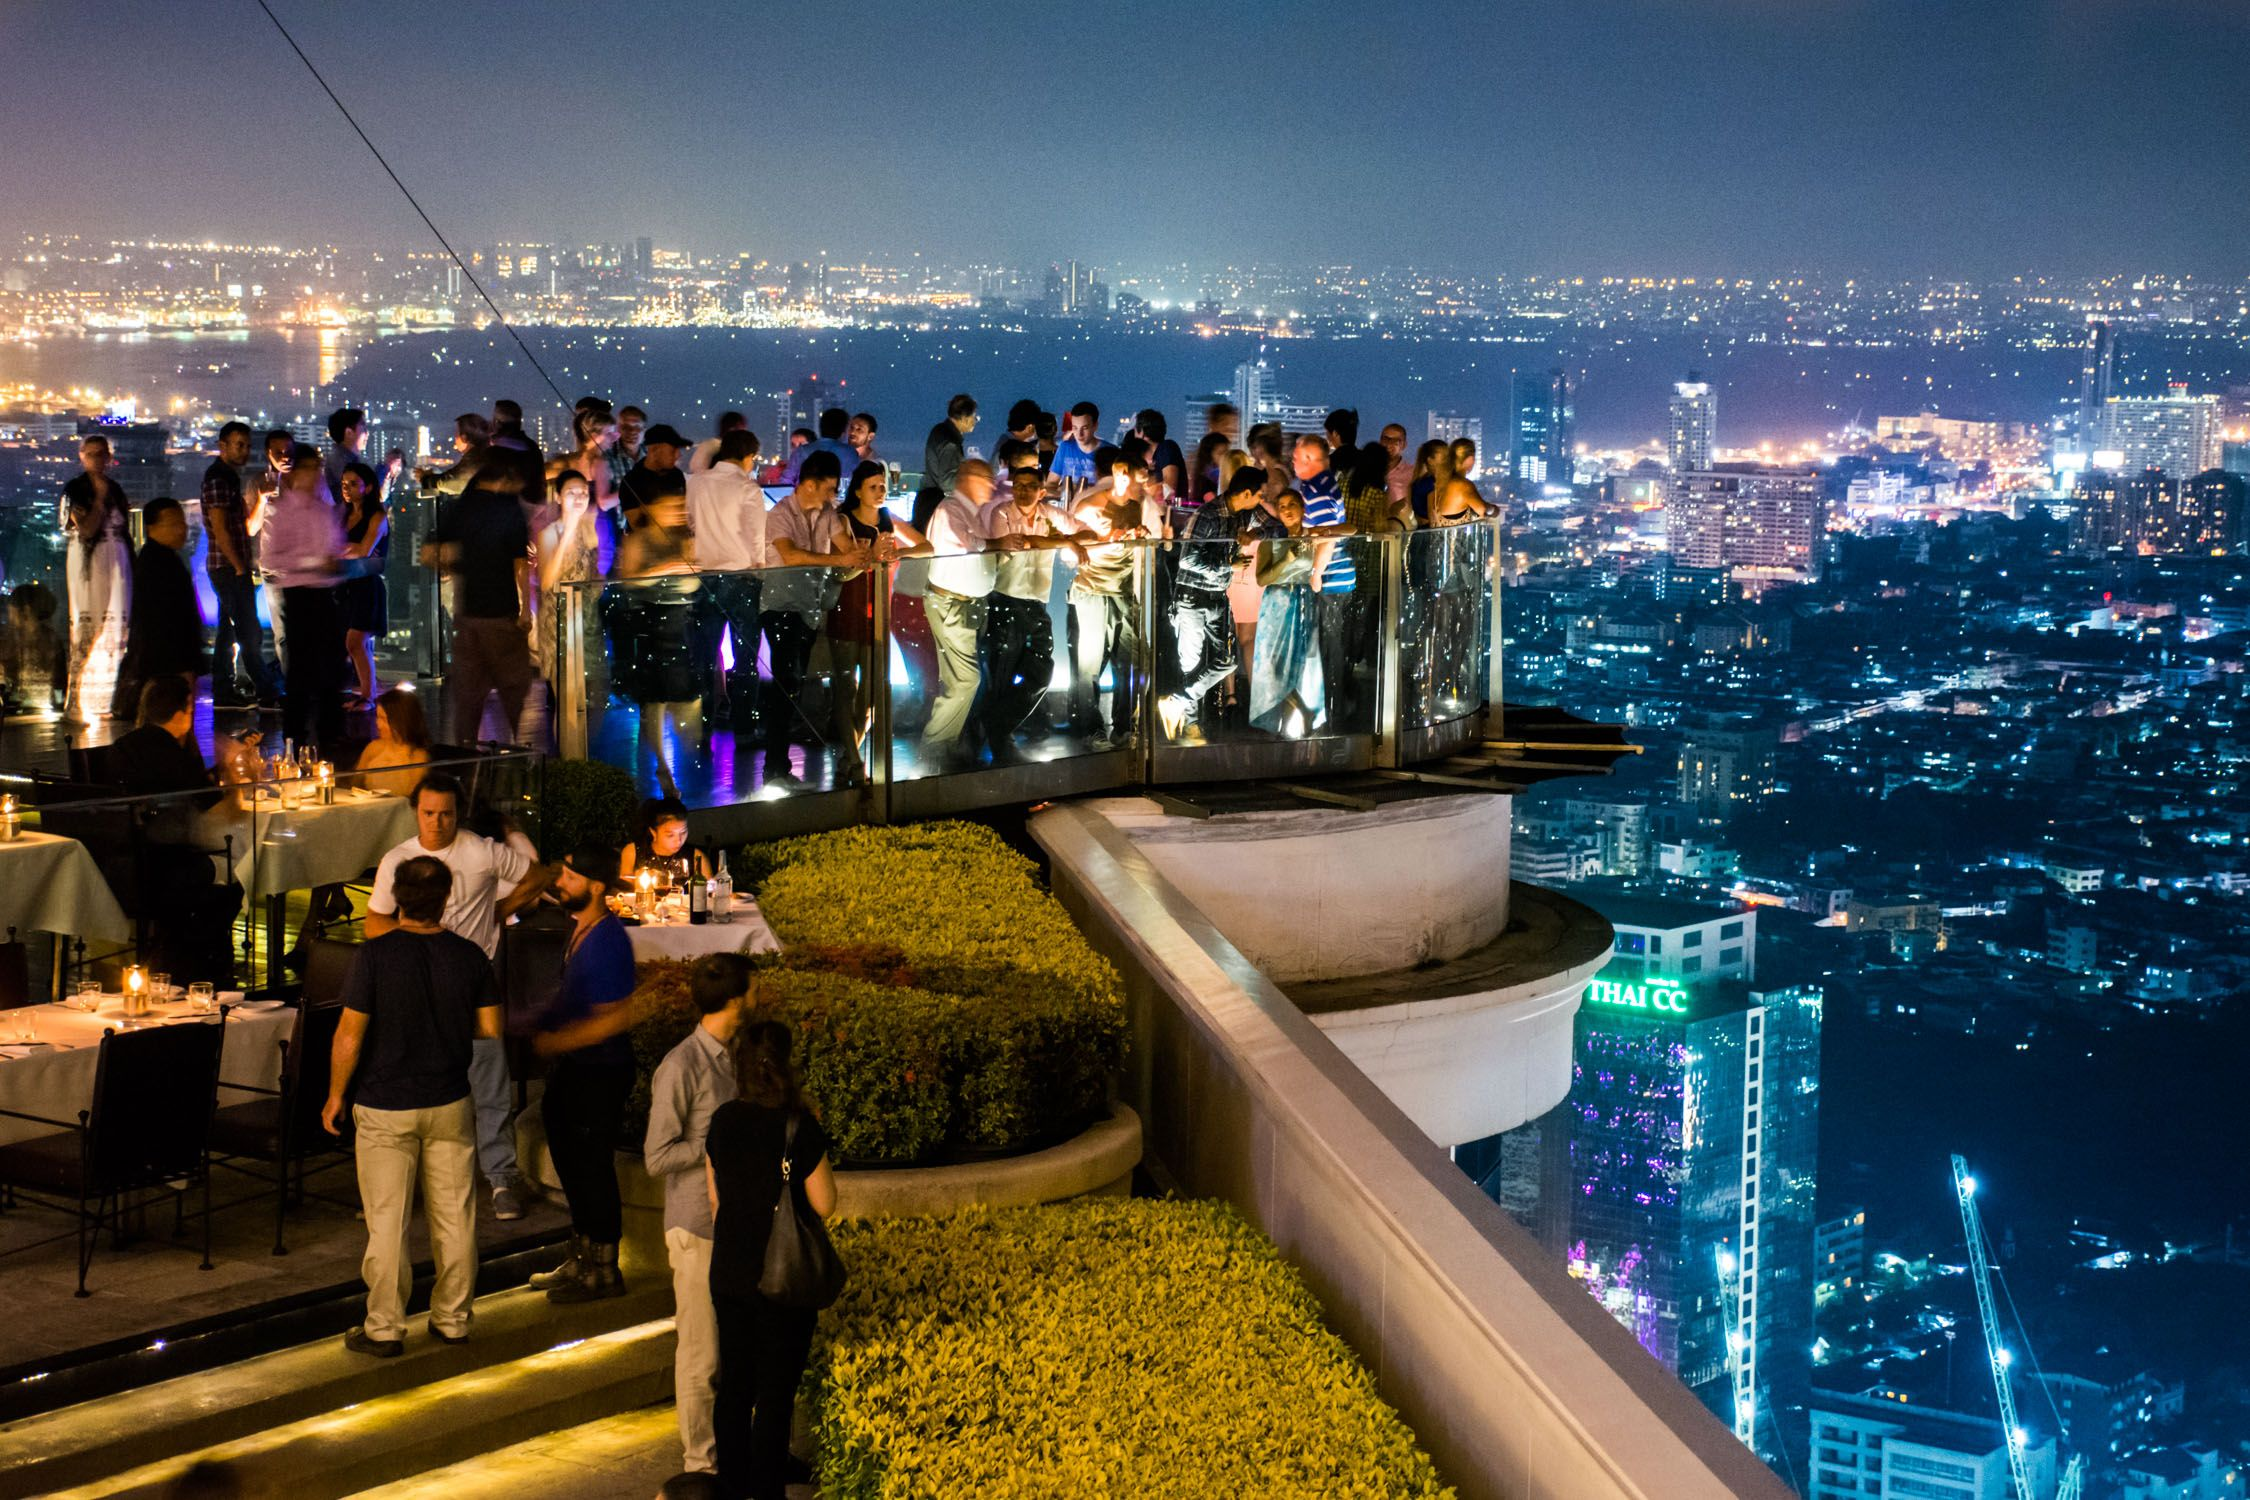 The 5 Best Rooftop Bars In Bangkok Thailand No Destinations Best Rooftop Bar Bangkok Best Rooftop Bars Rooftop Bar Bangkok